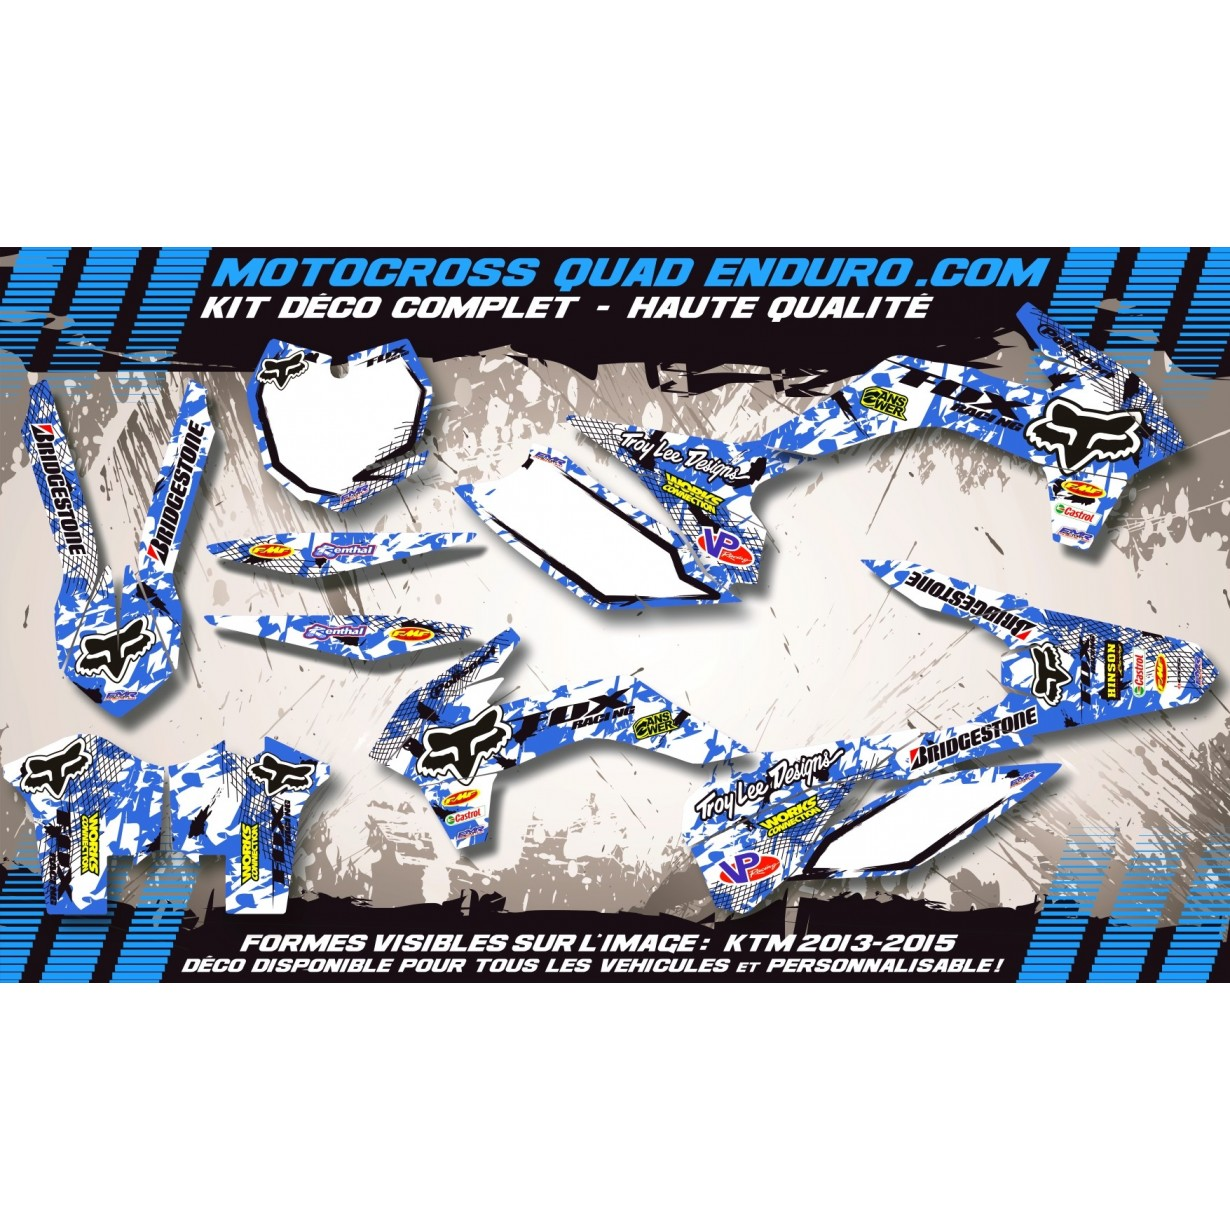 KIT DÉCO Perso FE/TE 14-16 ENDURO FOX MA9E